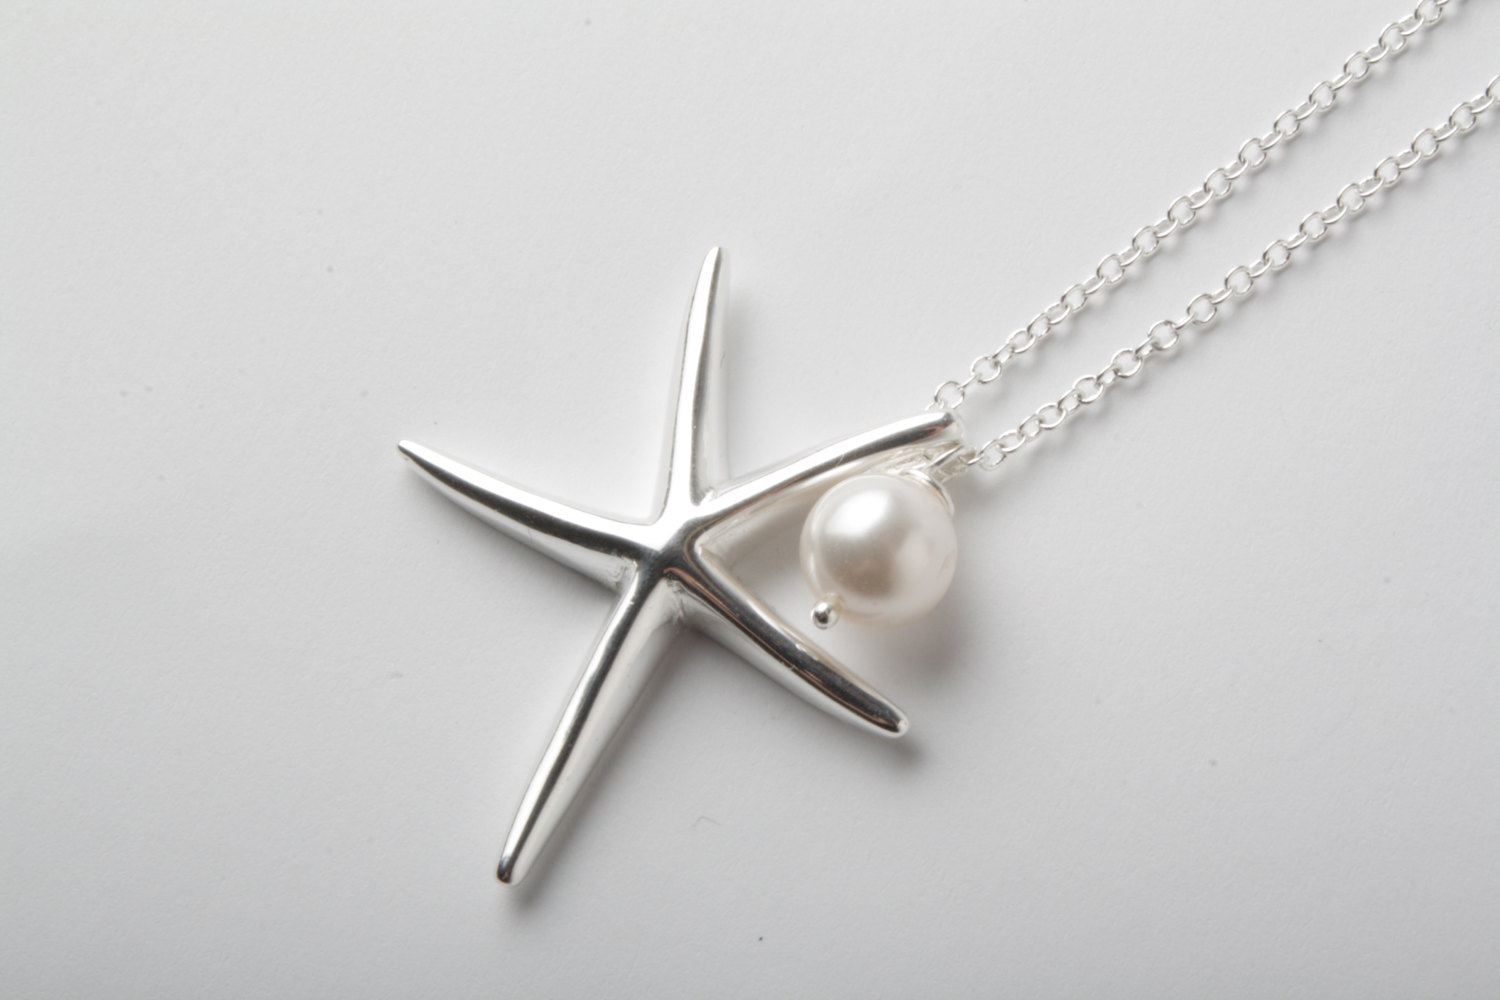 Starfish necklace 925 sterling silver necklace silver starfish starfish necklace 925 sterling silver necklace silver starfish and swarovski pearl necklace beach wedding necklace nautical aloadofball Image collections